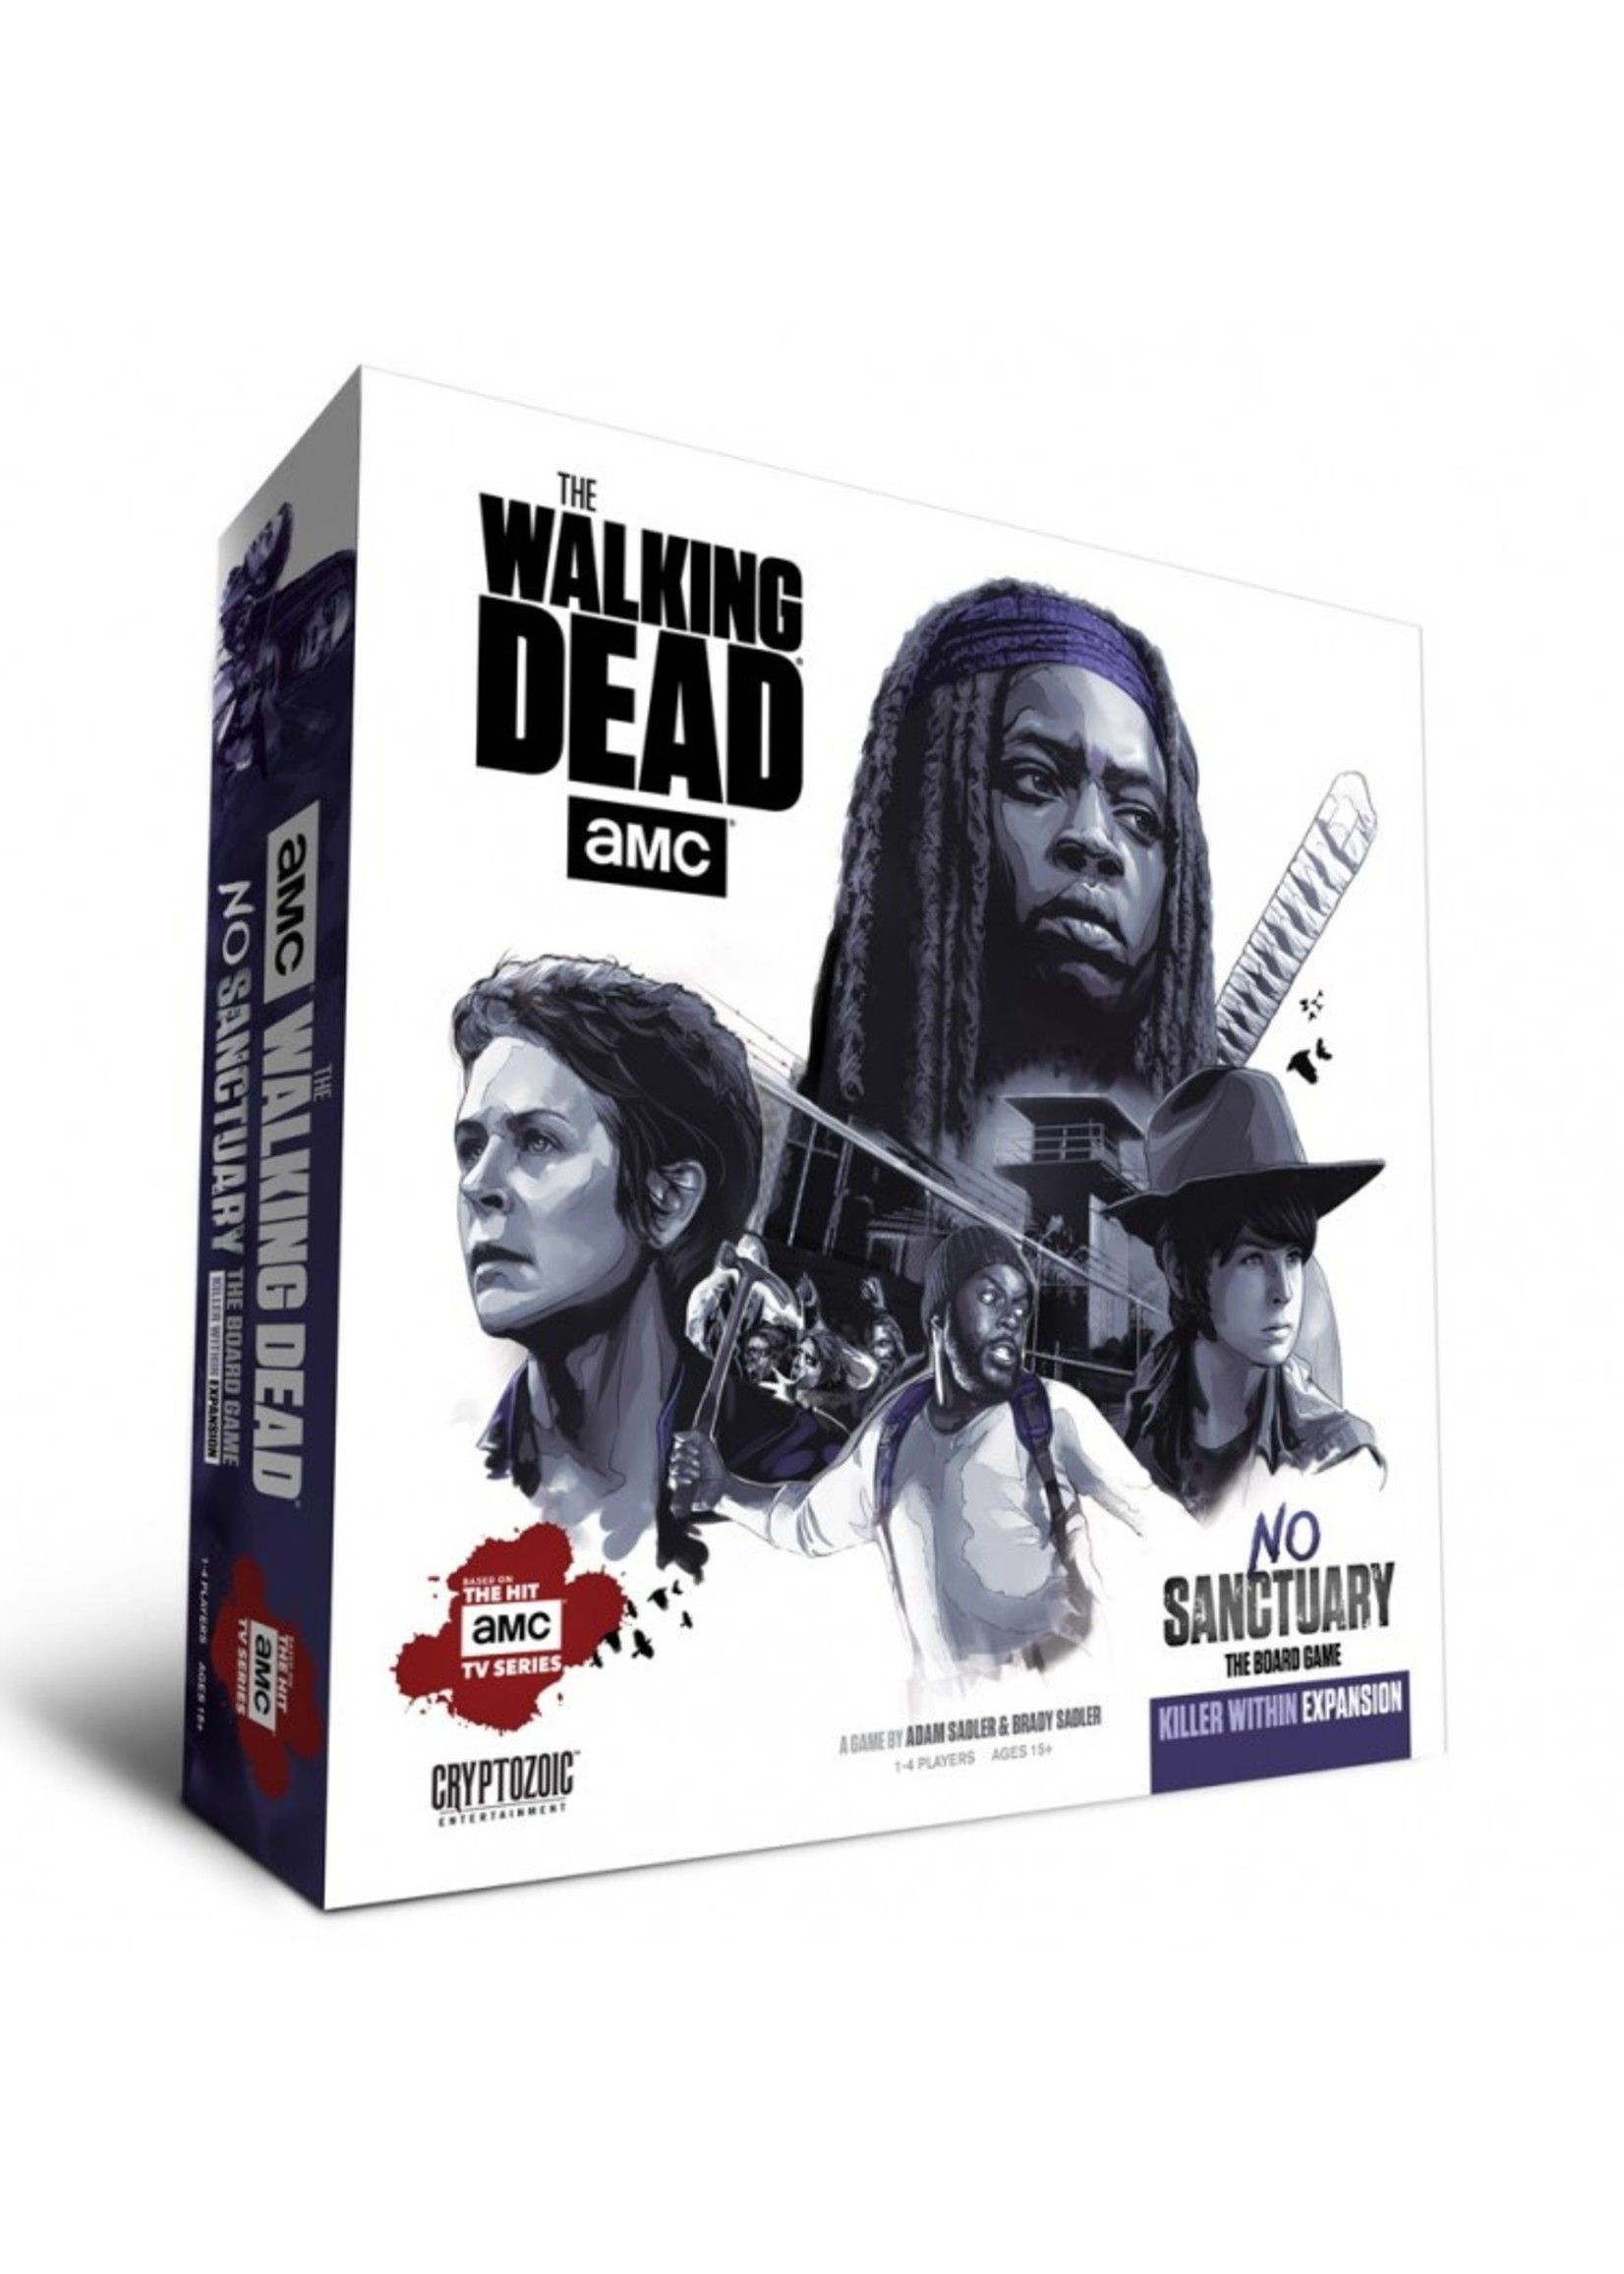 The Walking Dead No Sanctuary Killer Within Expansion